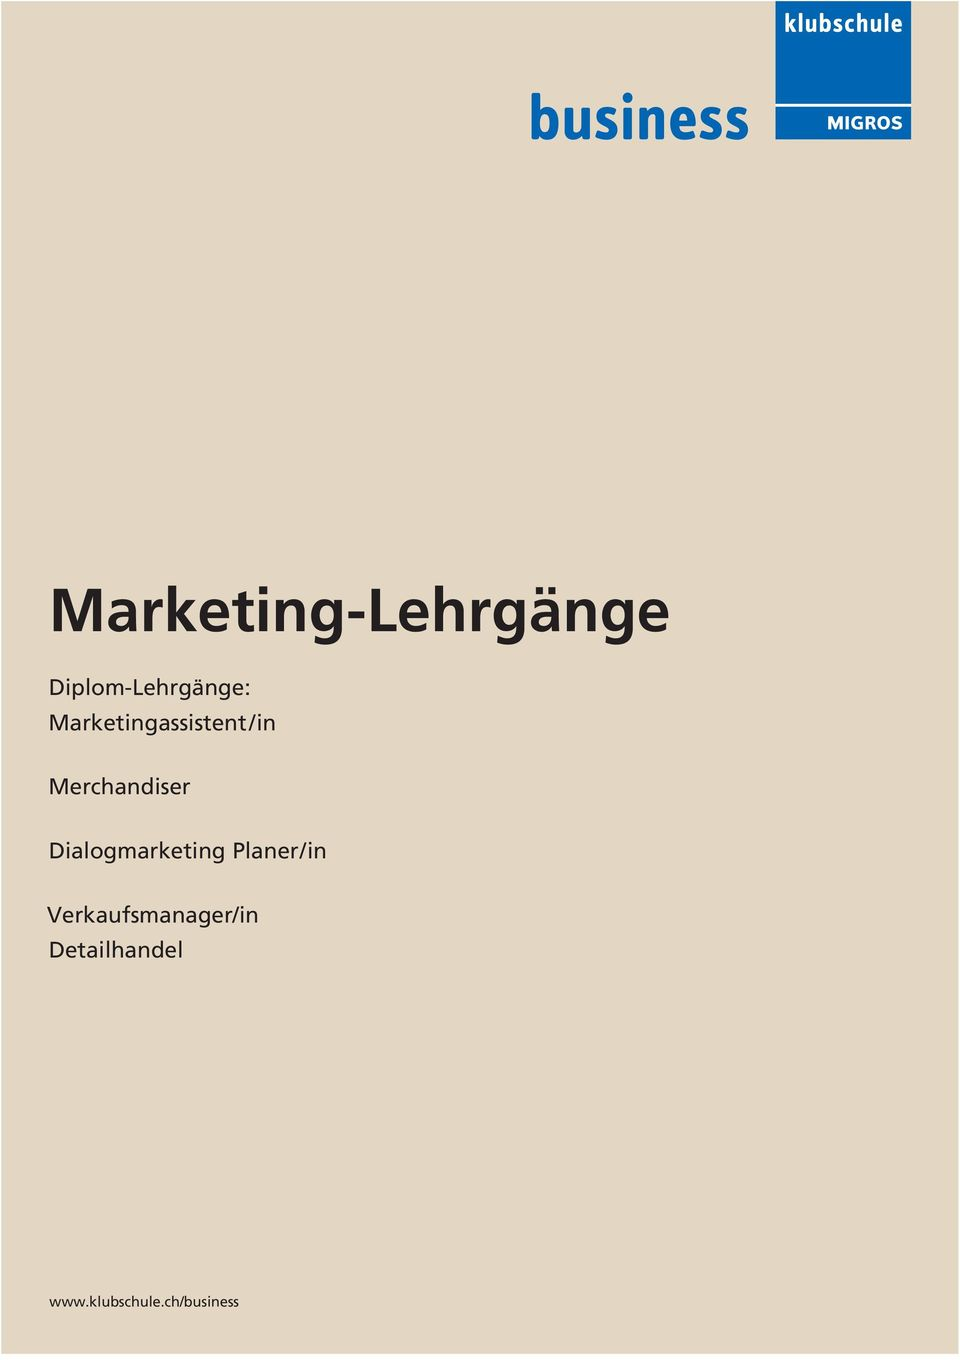 Dialogmarketing Planer/in